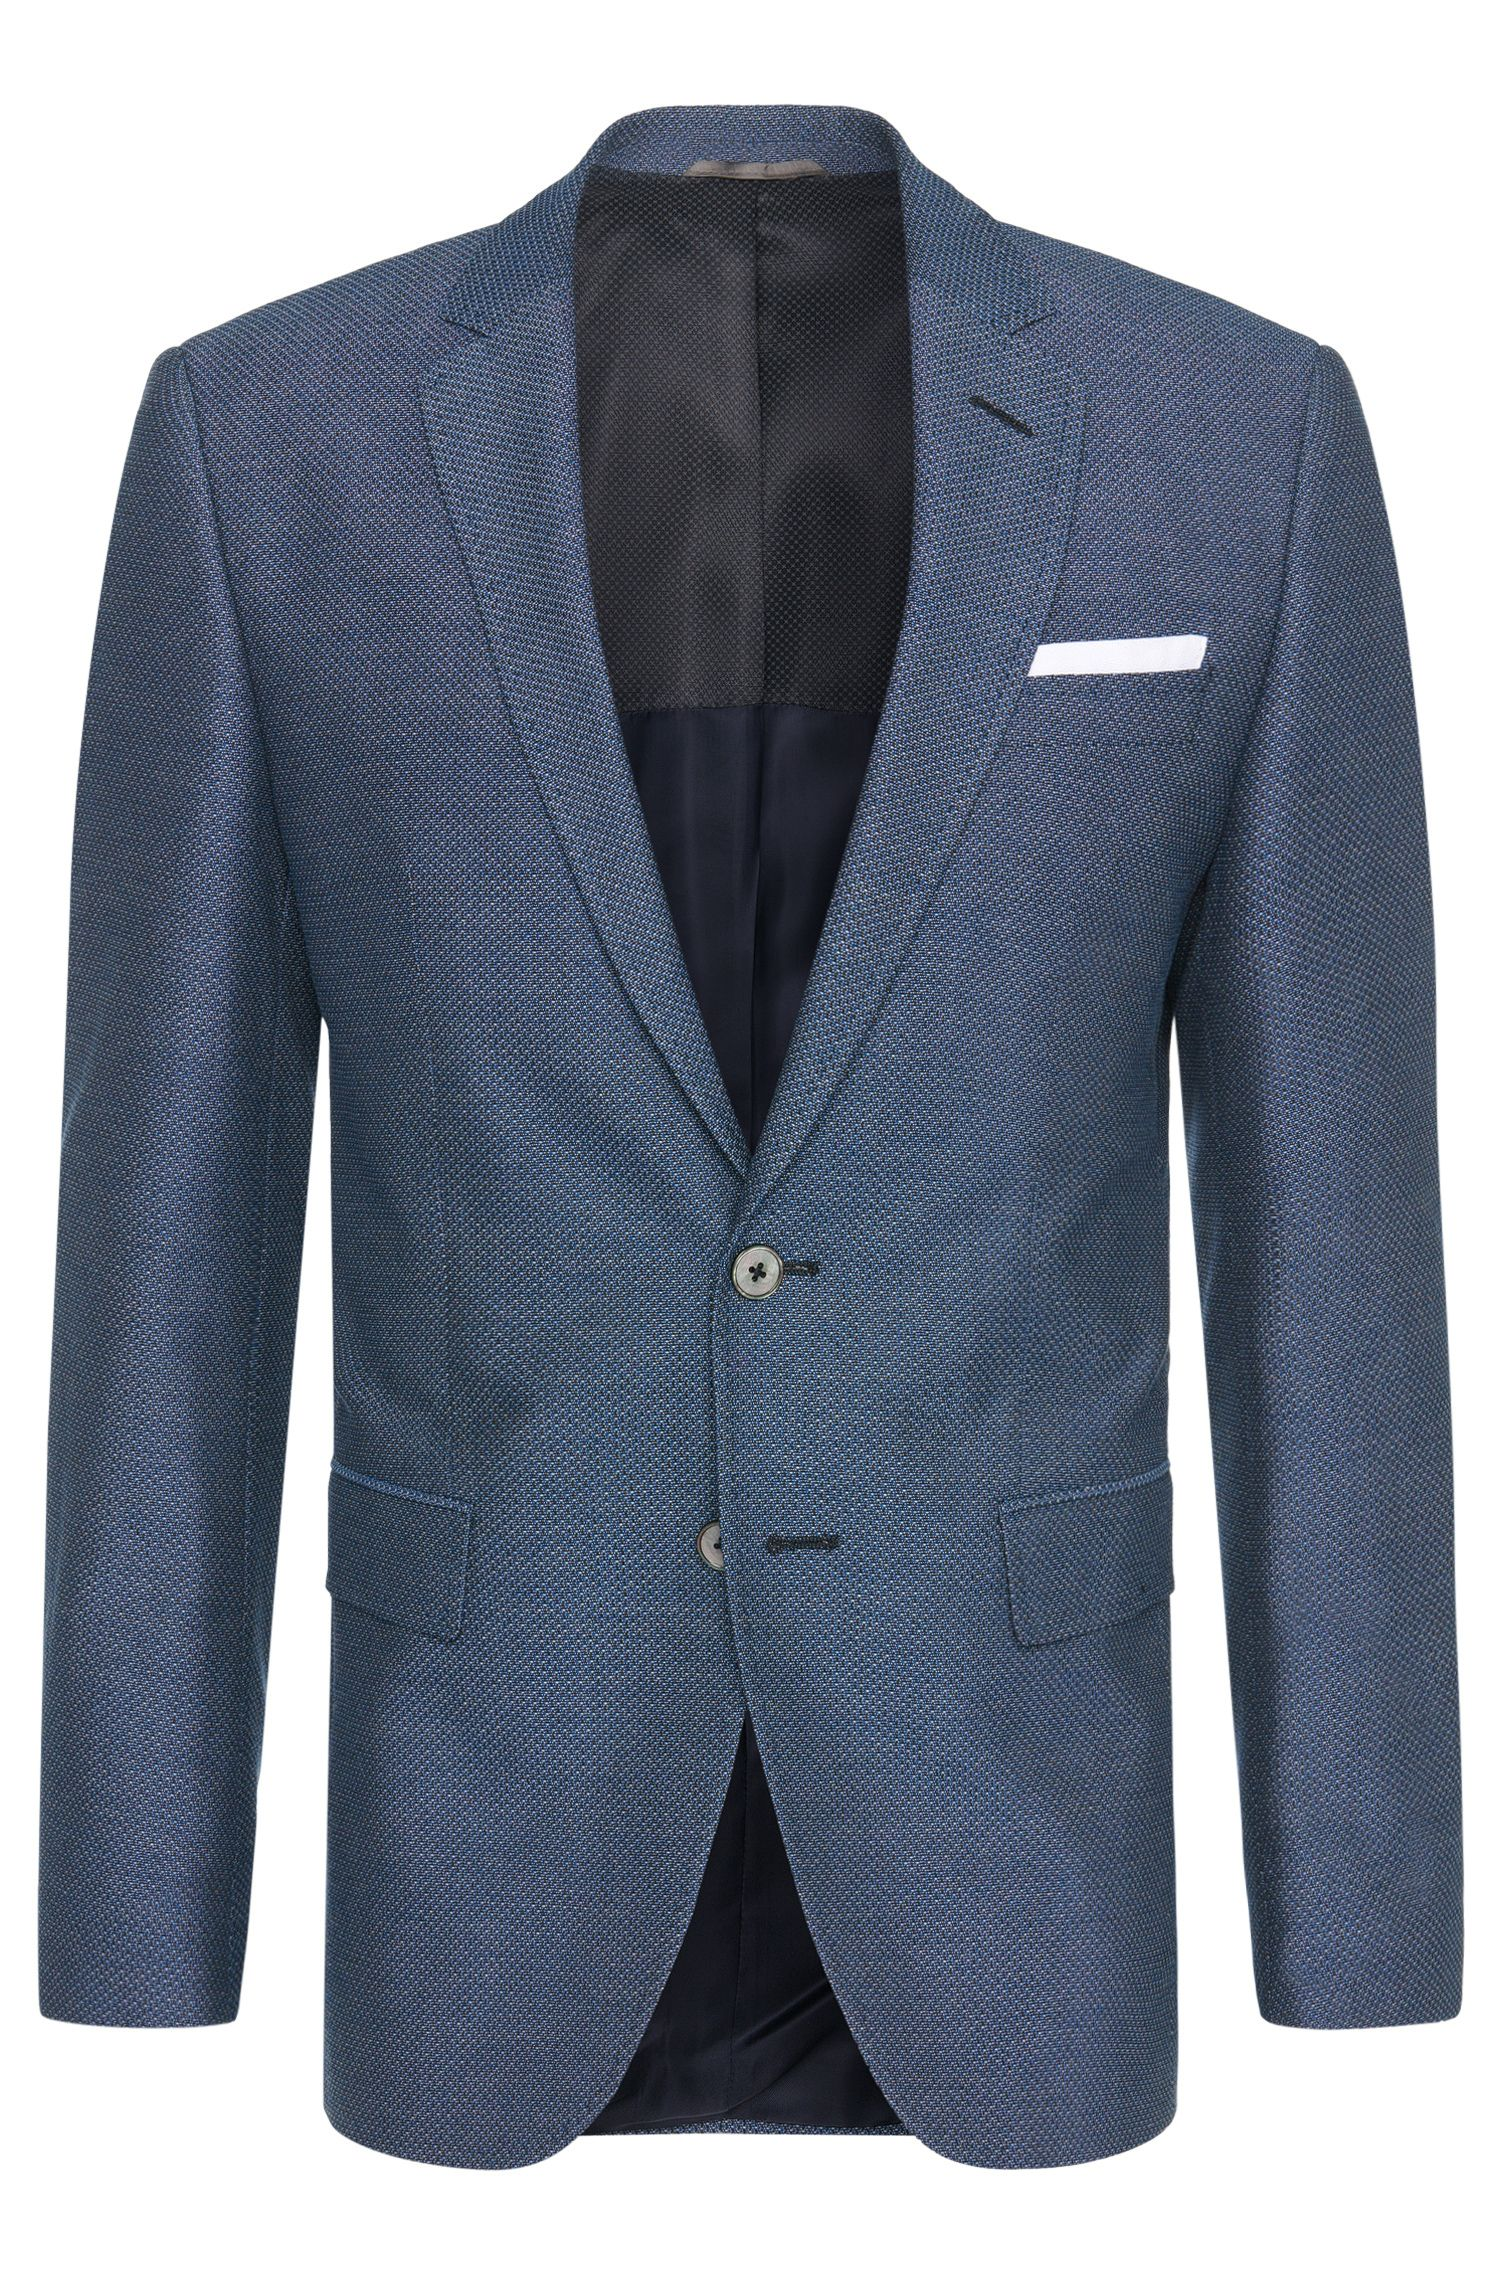 Patterned slim-fit jacket in cotton blend with integrated pocket square: 'Hutson3'